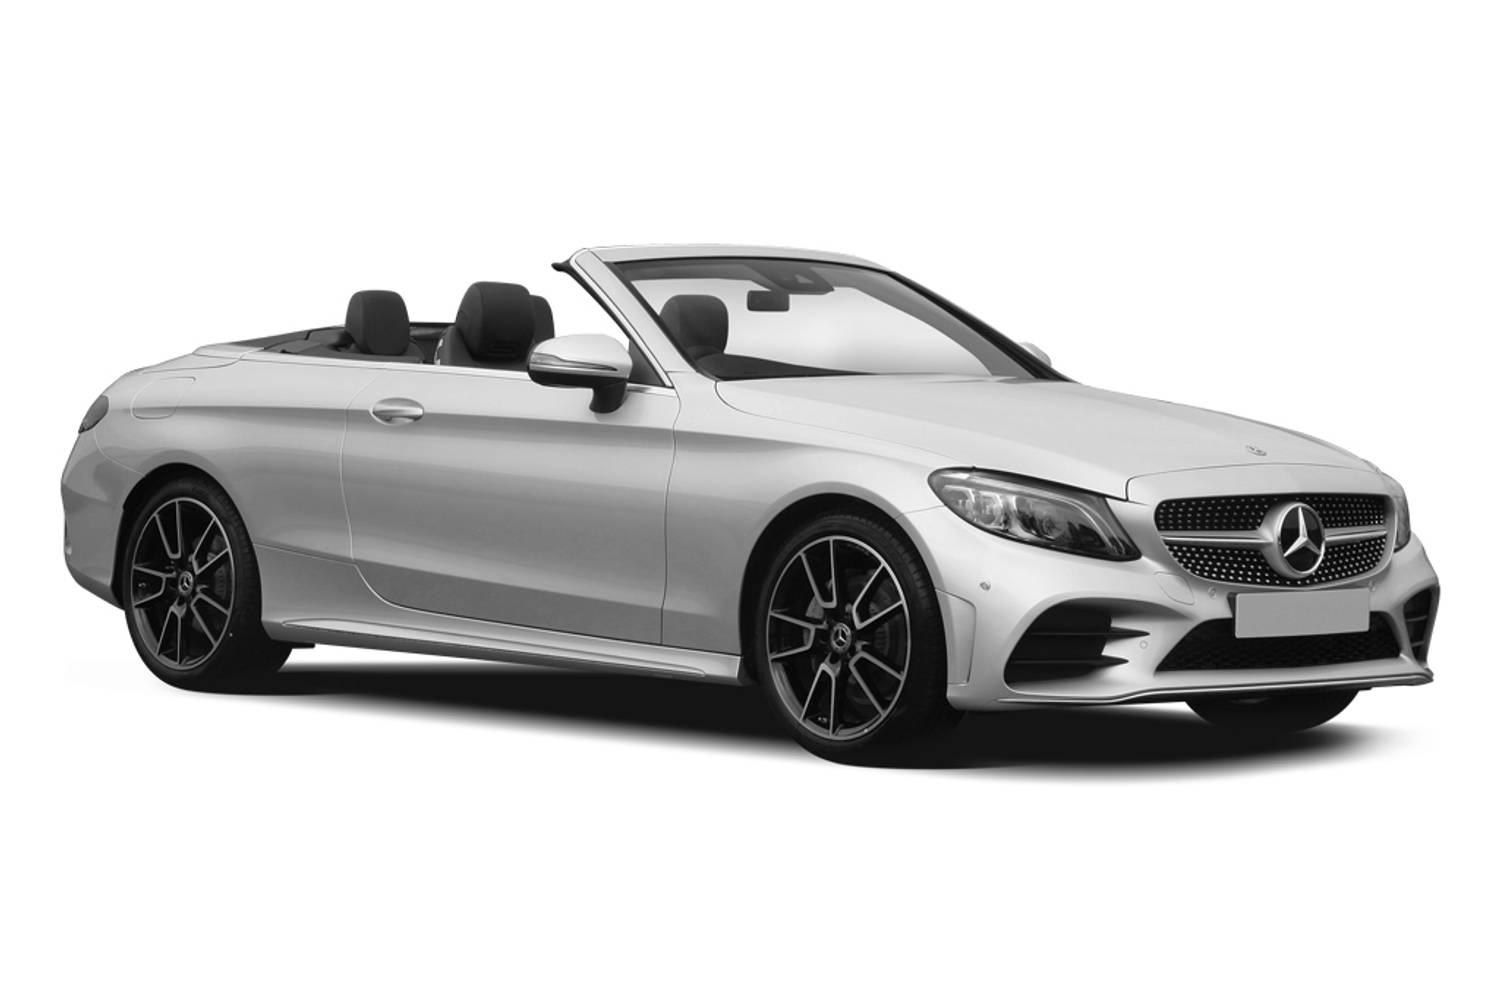 Mercedes-Benz C Class Cabriolet AMG Line 2dr Front Three Quarter